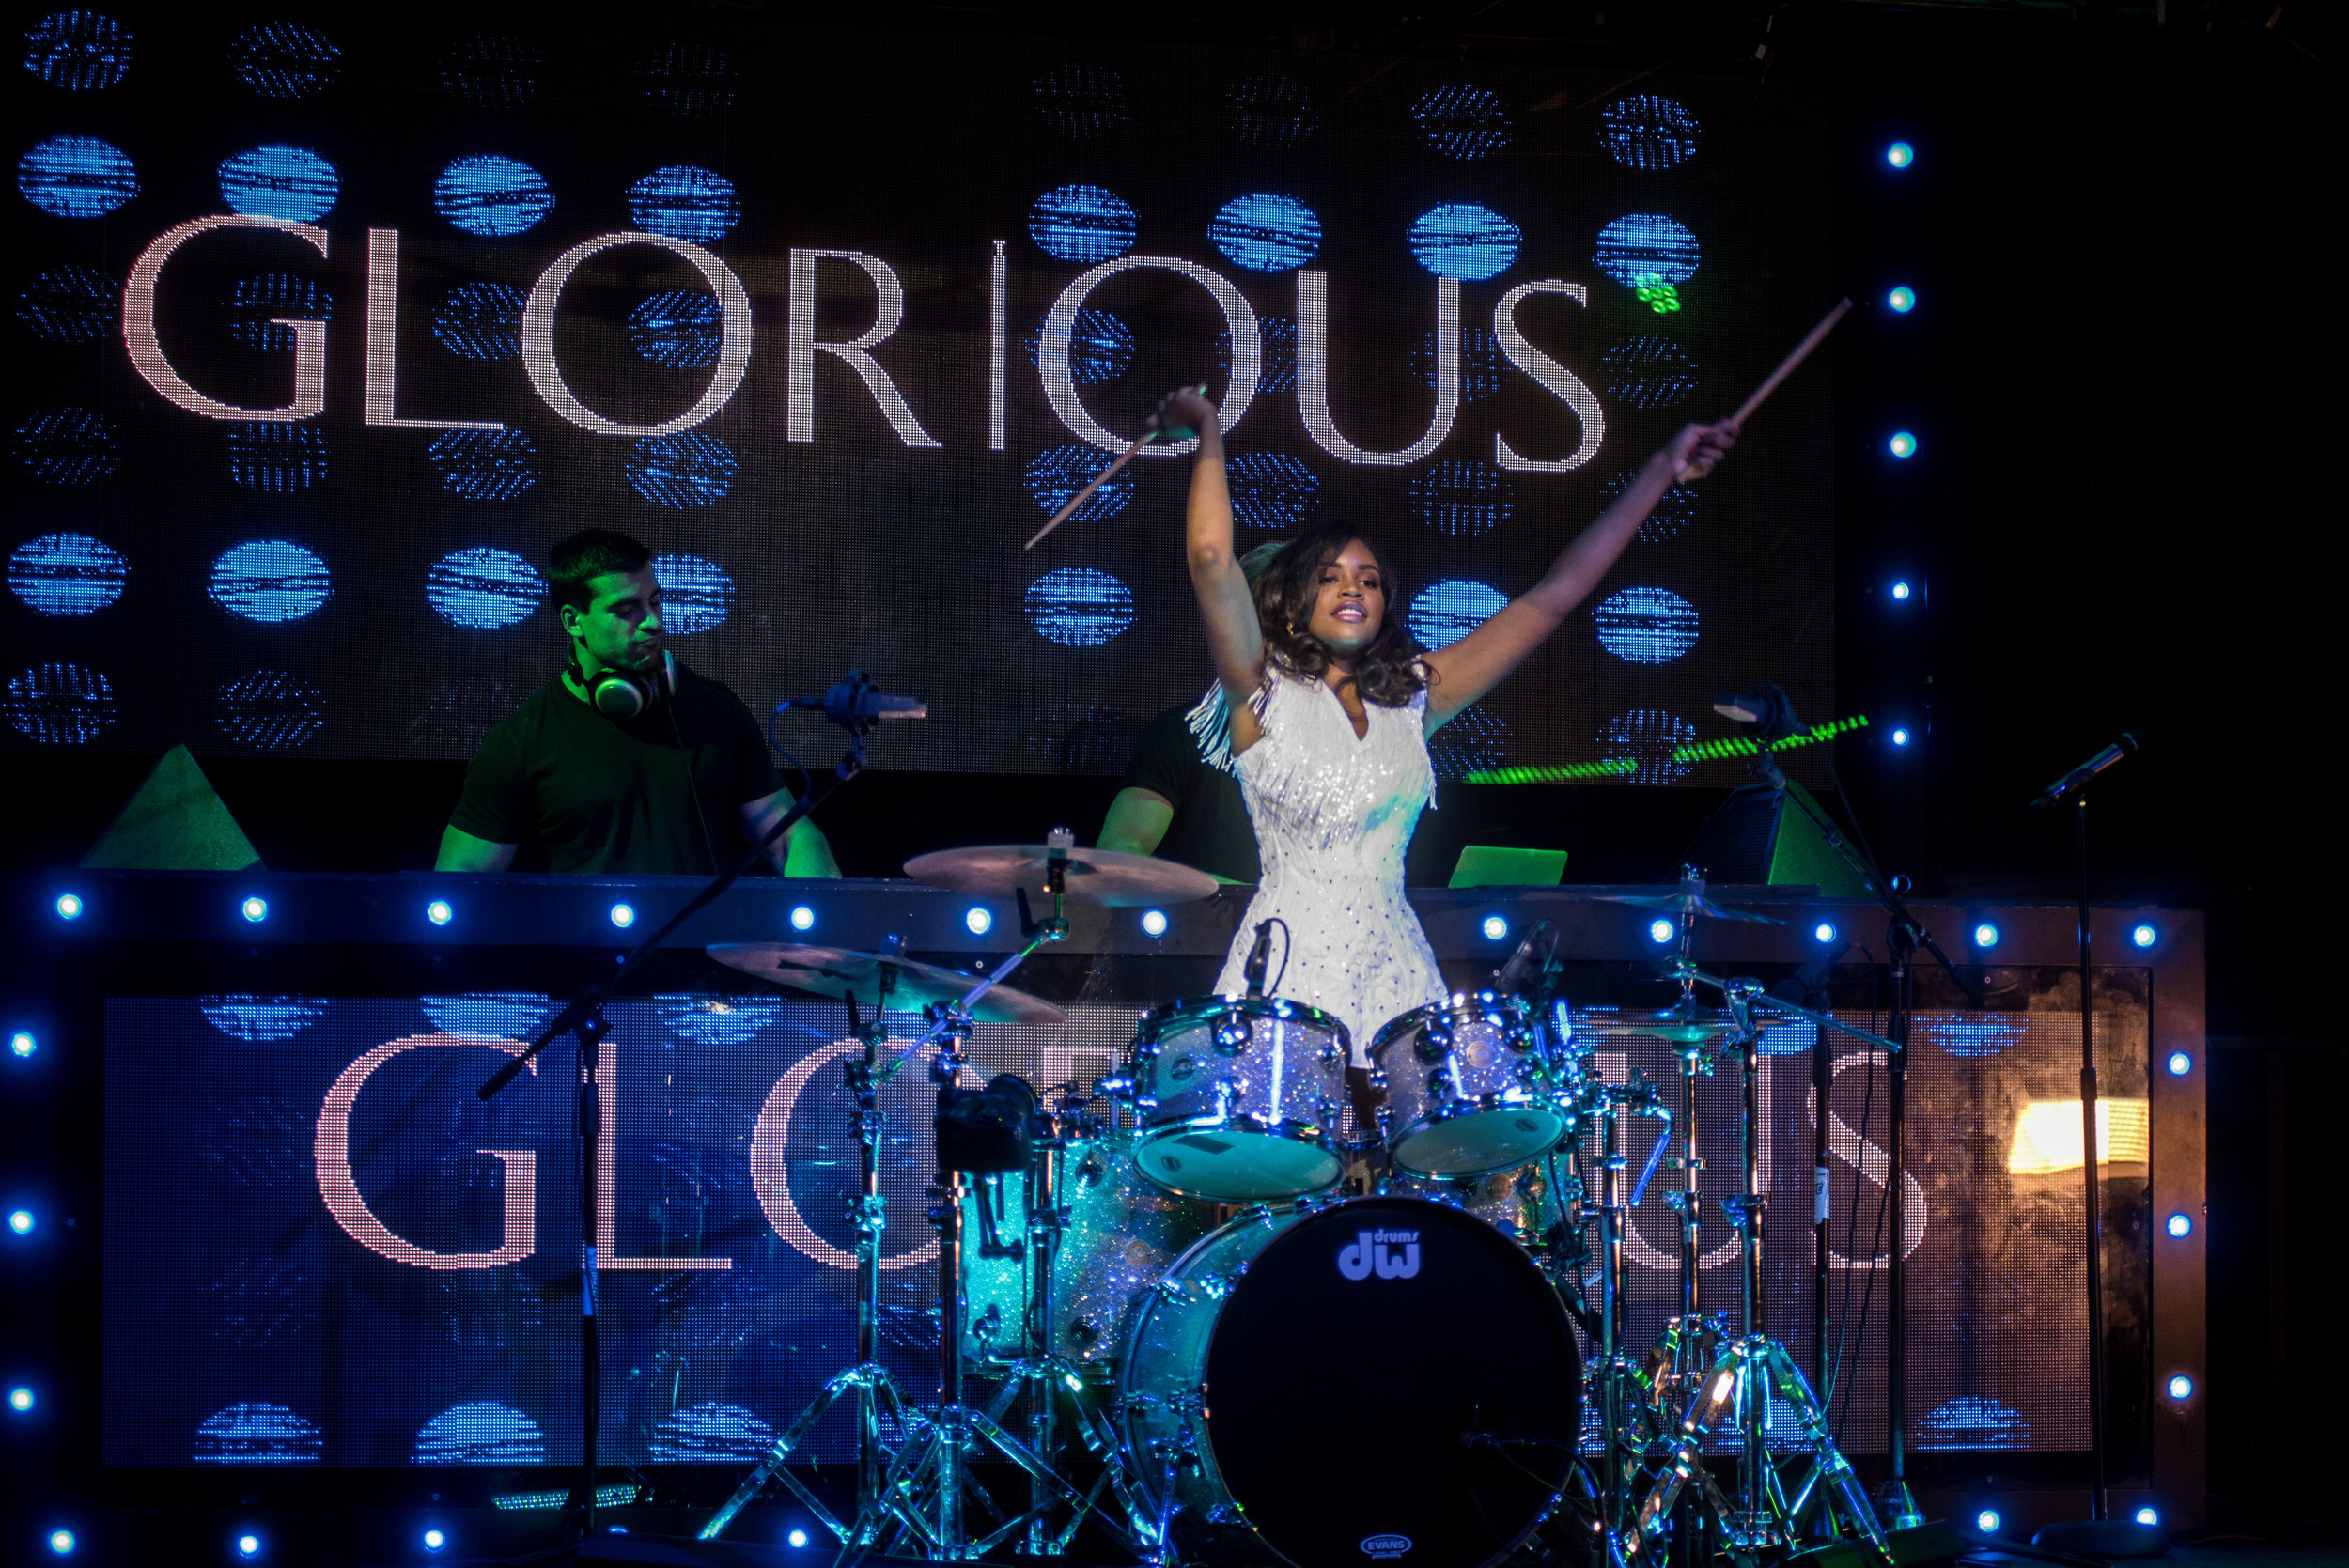 Glorious-Singer-Livetronica Drummer-Producer-Songwriter-Marquee-Nightclub-Video-New York-NY-44.jpg